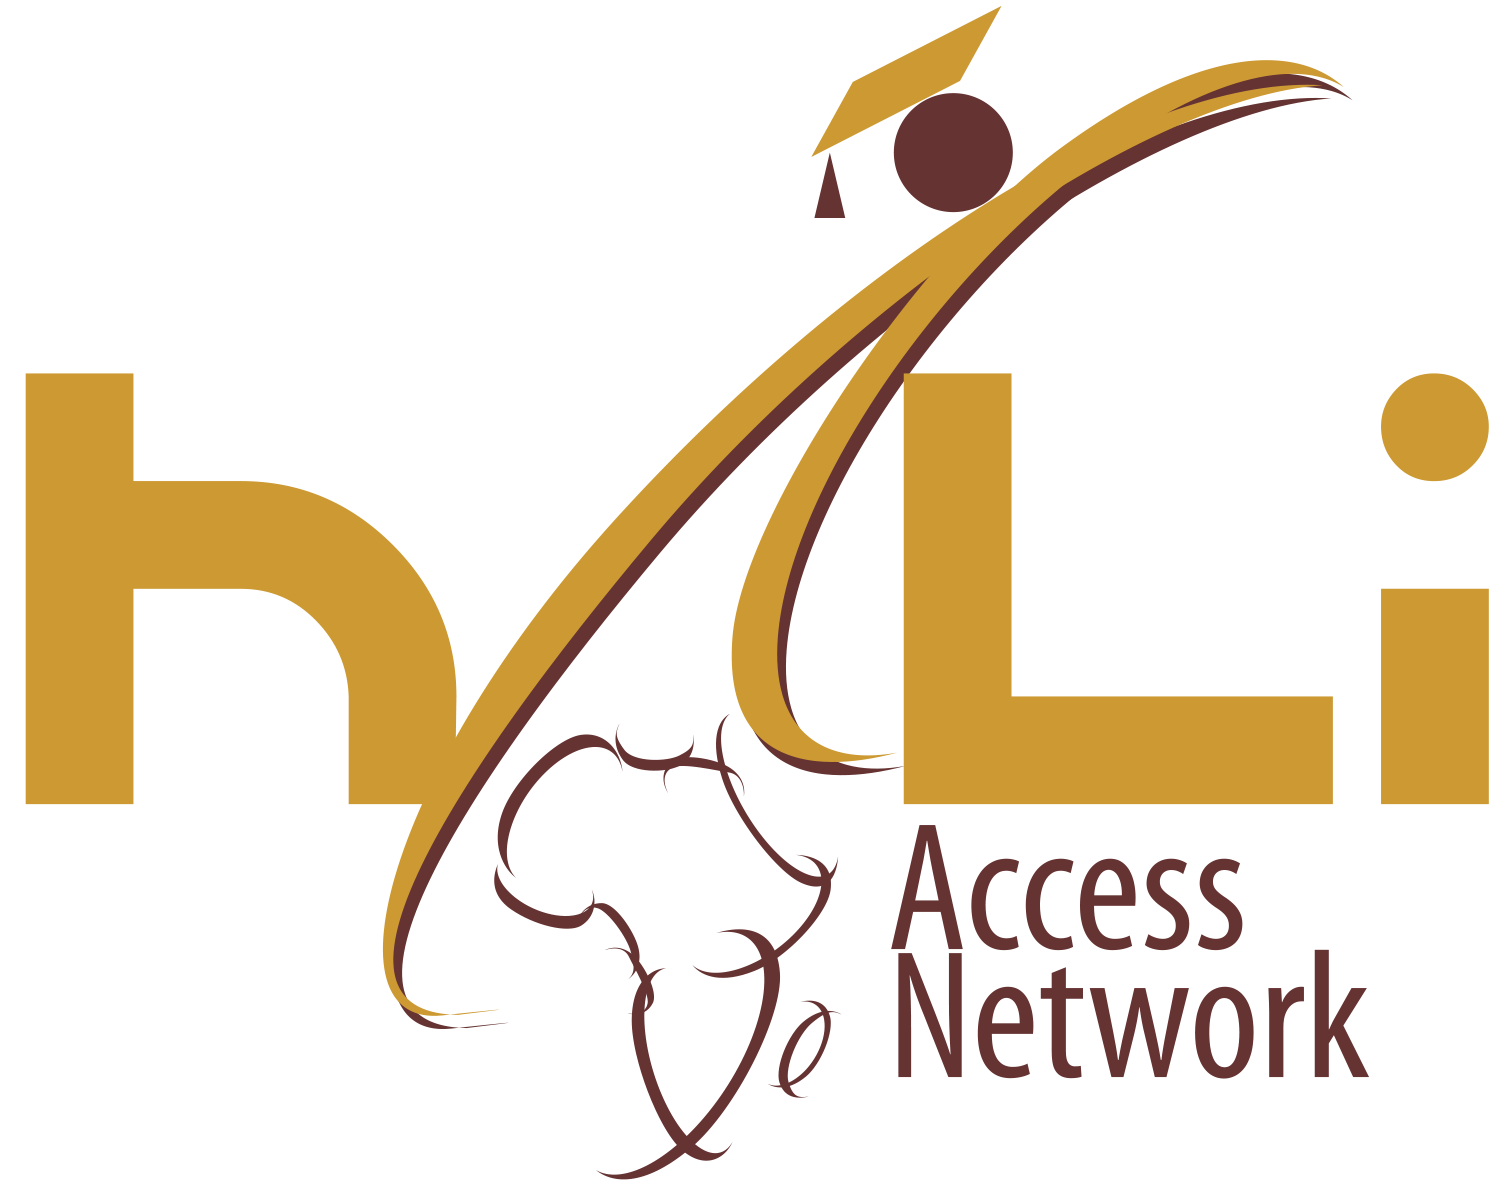 HALI Access Network